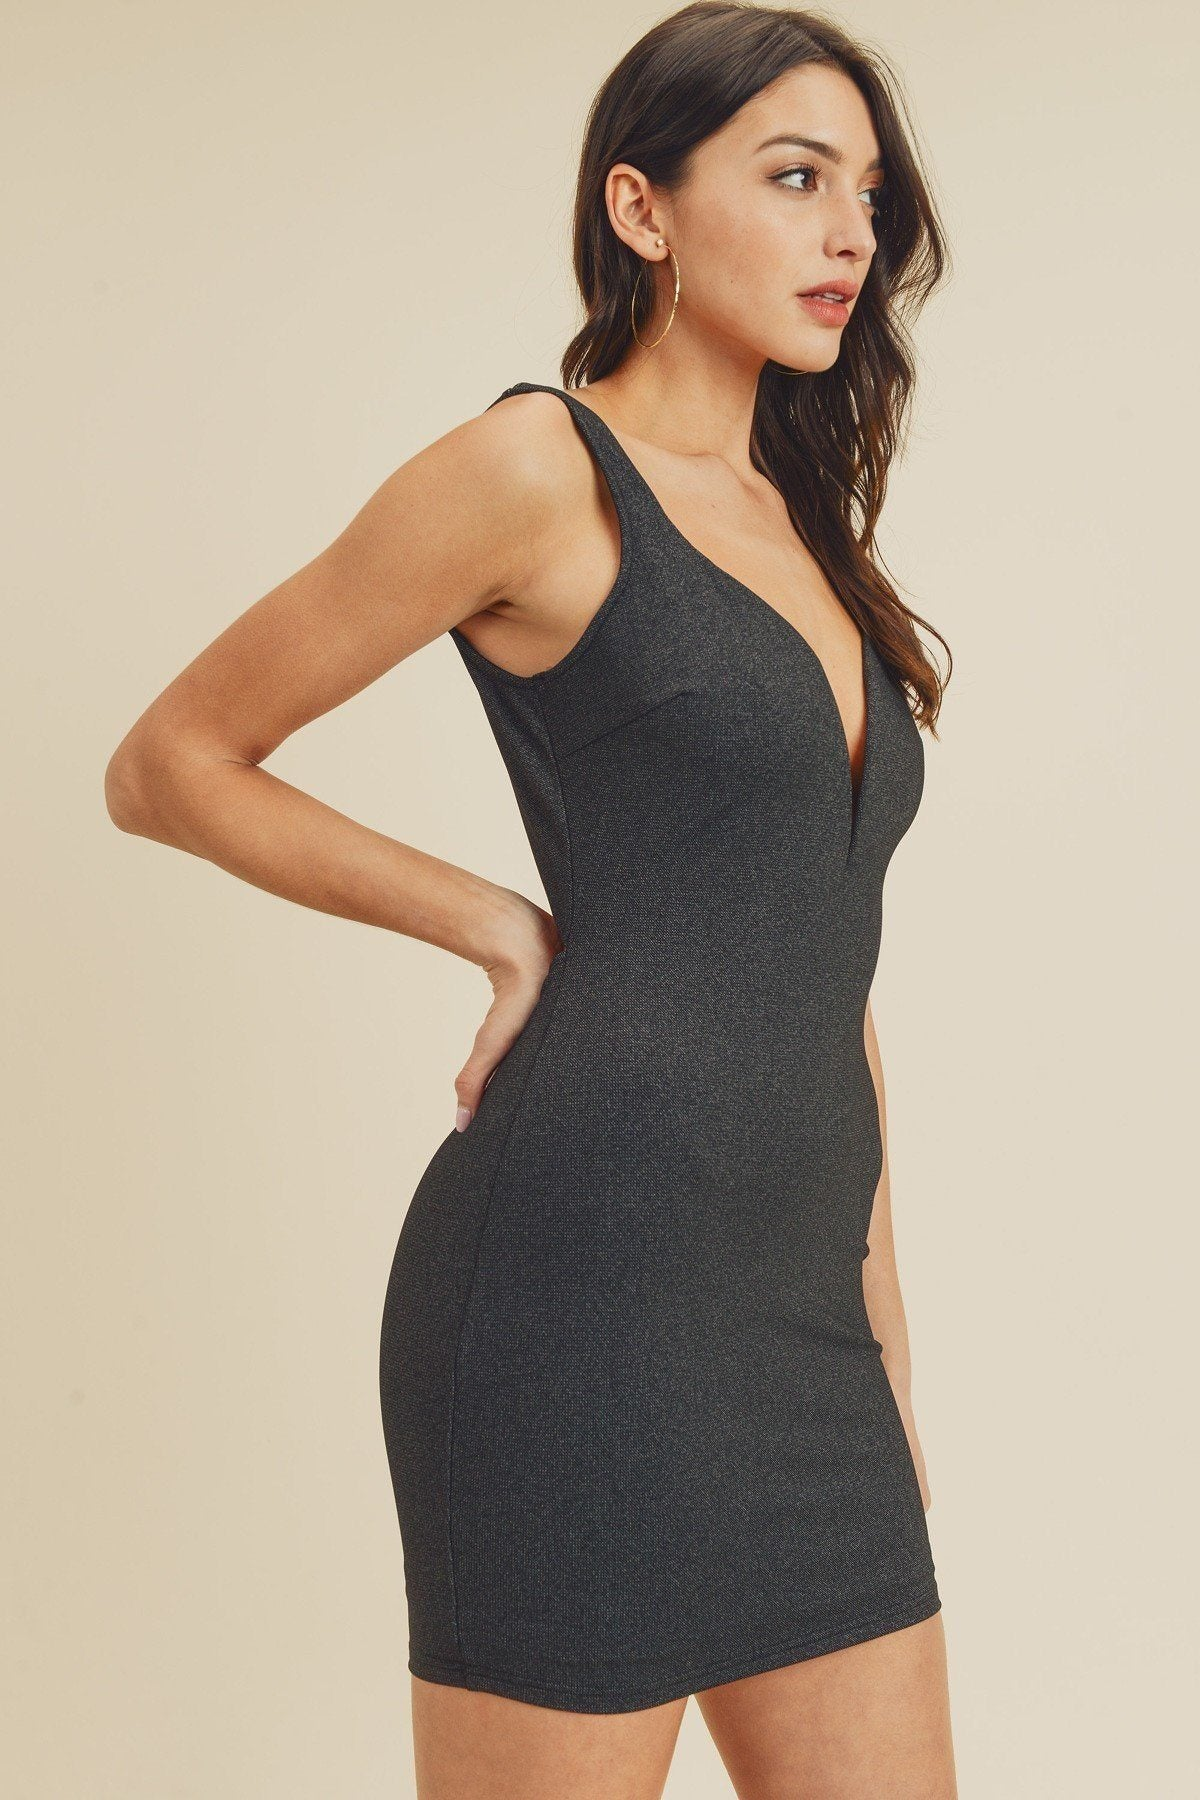 Black Dress - Open Back Plunging V-neck Bodycon Dress - Local Scenes